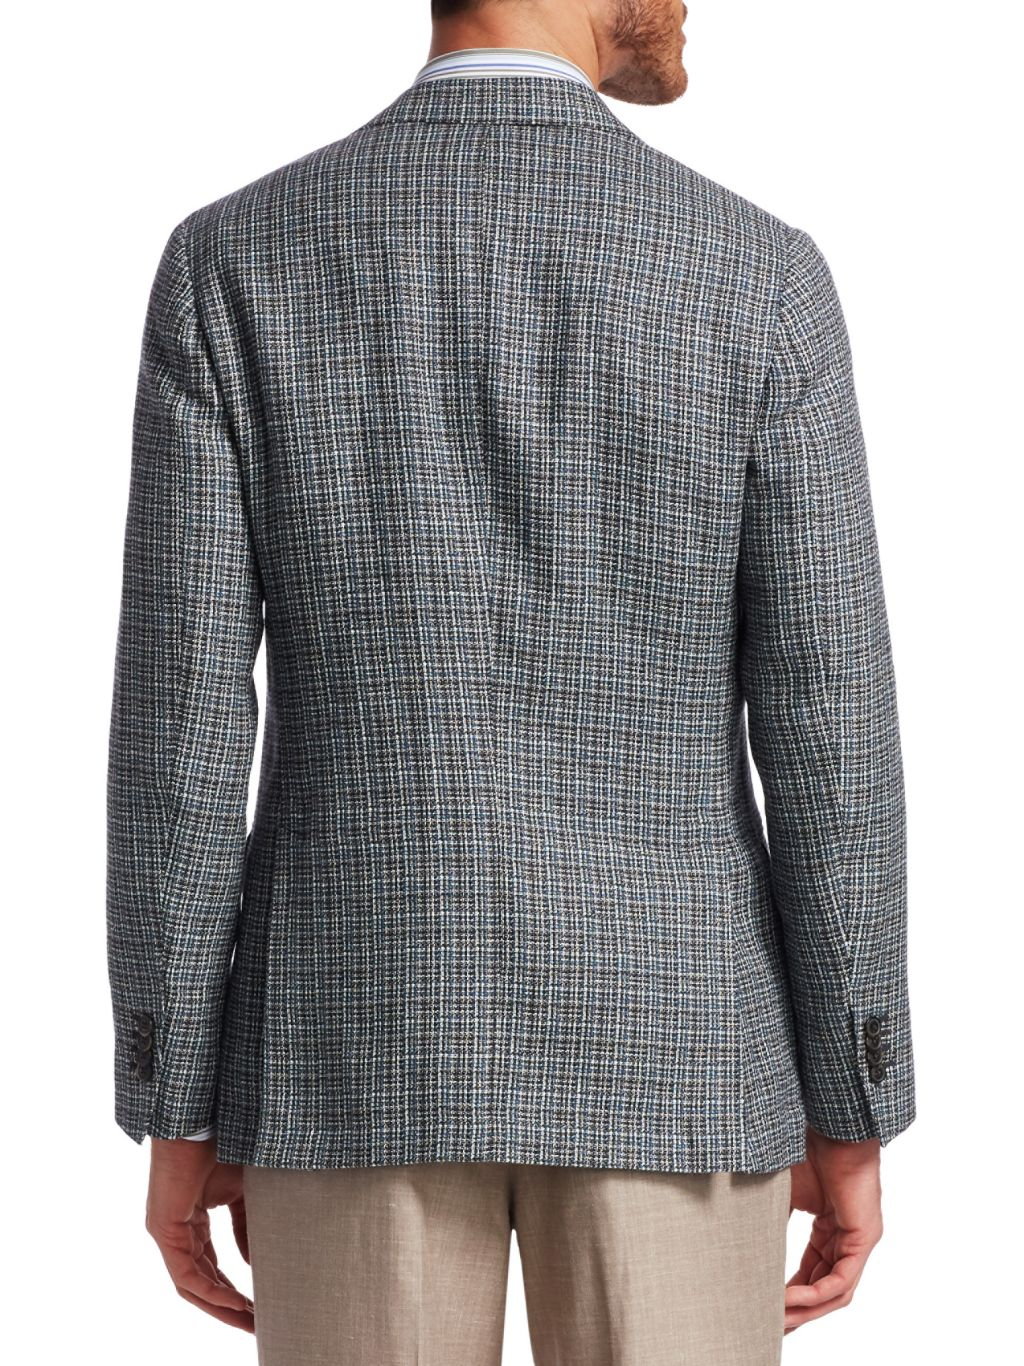 Saks Fifth Avenue COLLECTION Hopsack Cashmere & Virgin Wool Sportcoat